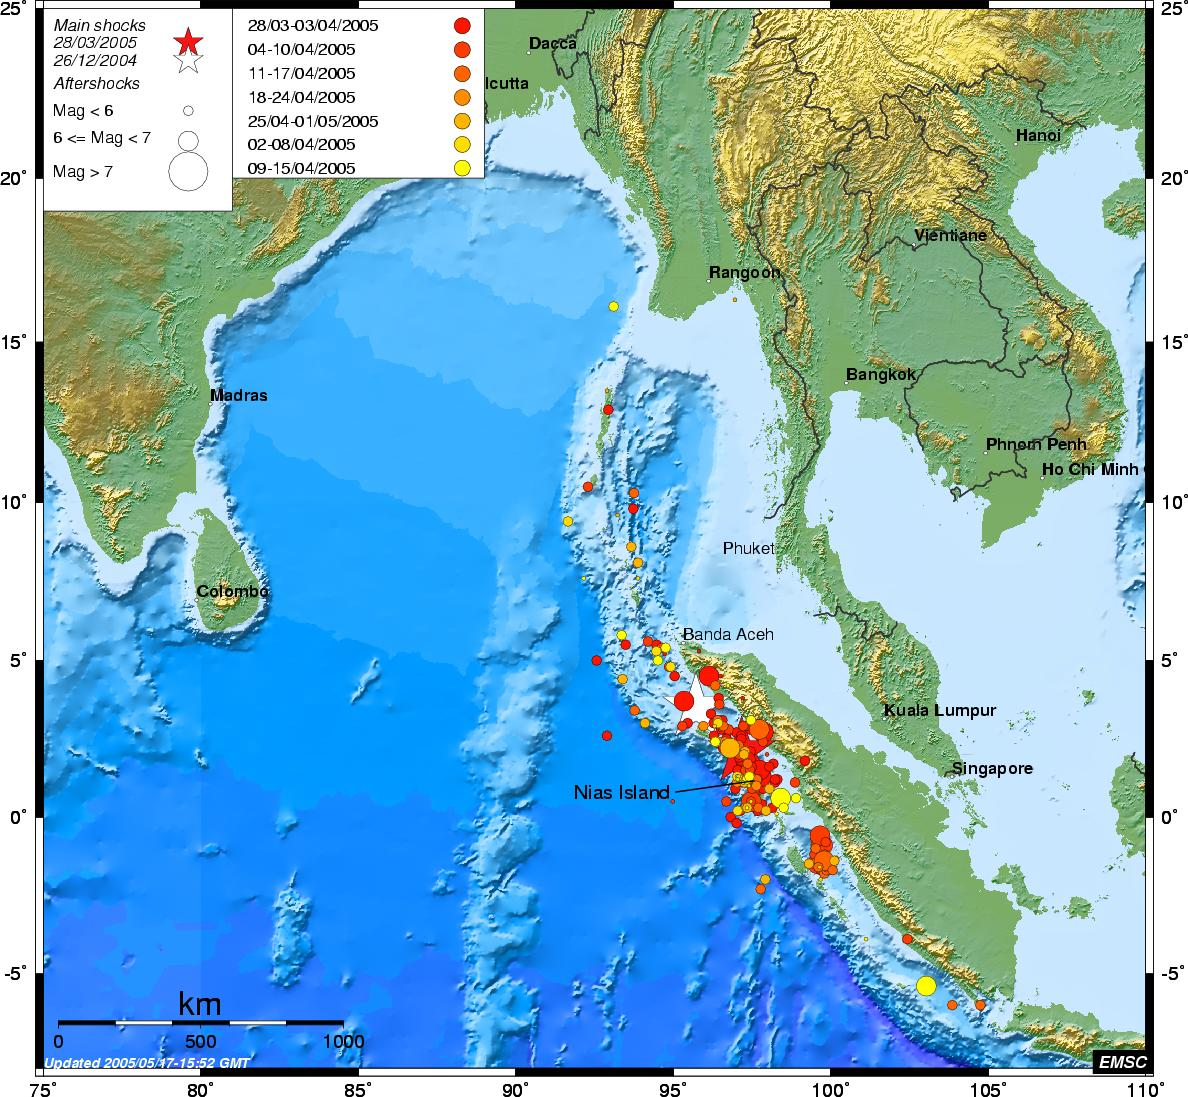 Sumatra Aftershocks distributions